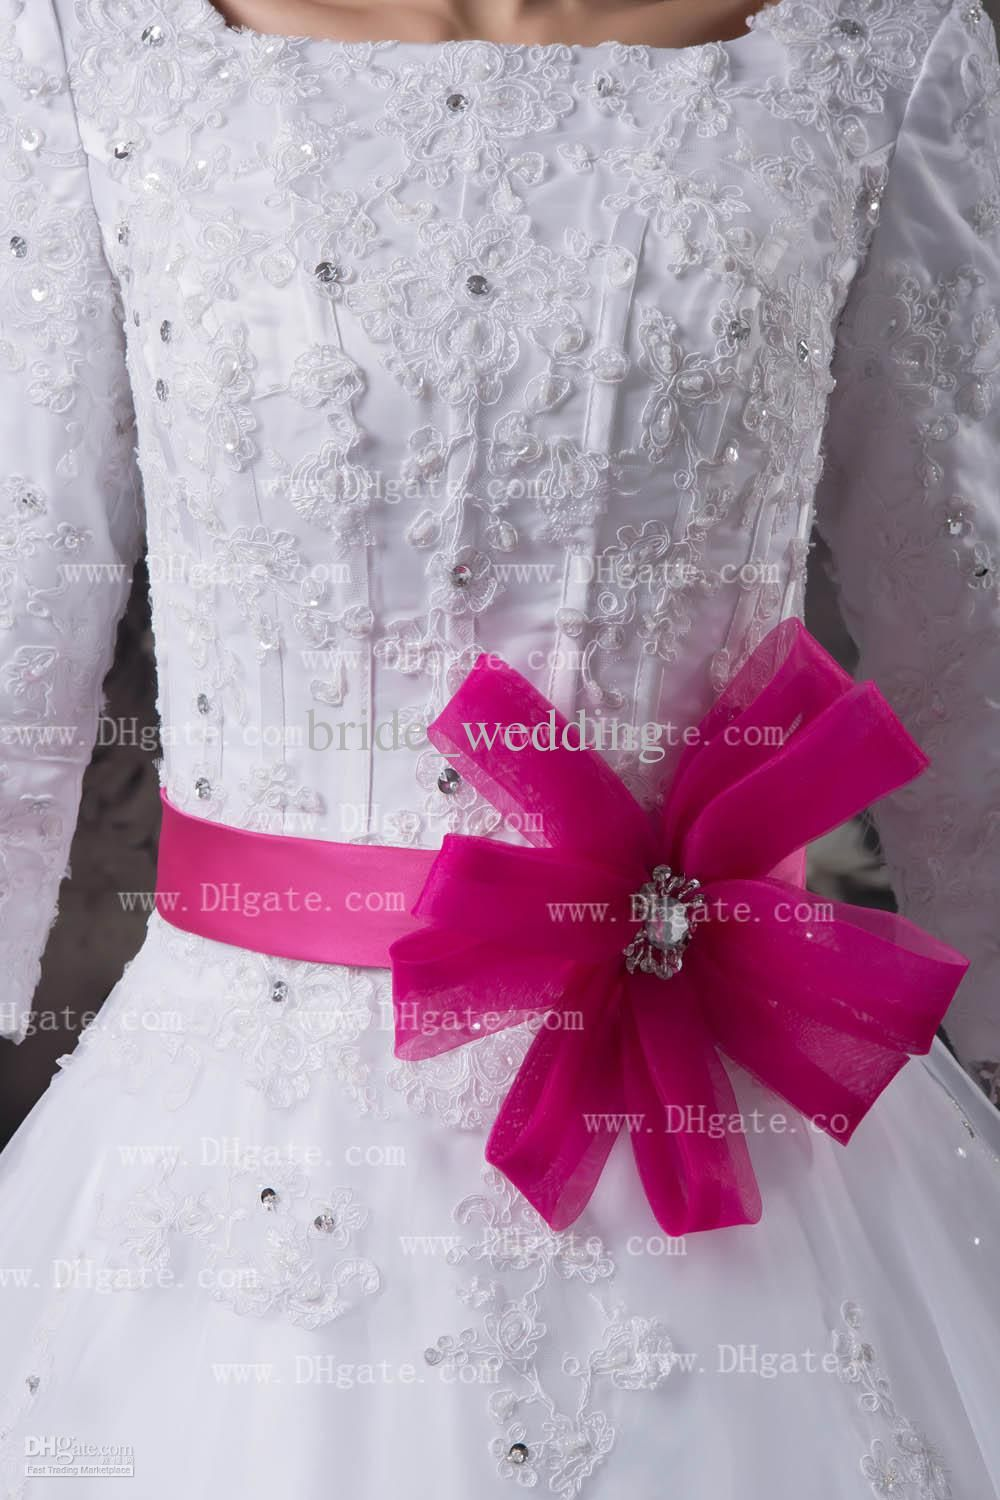 Hot pink brides maid dresses for girls white hot pink ball gown